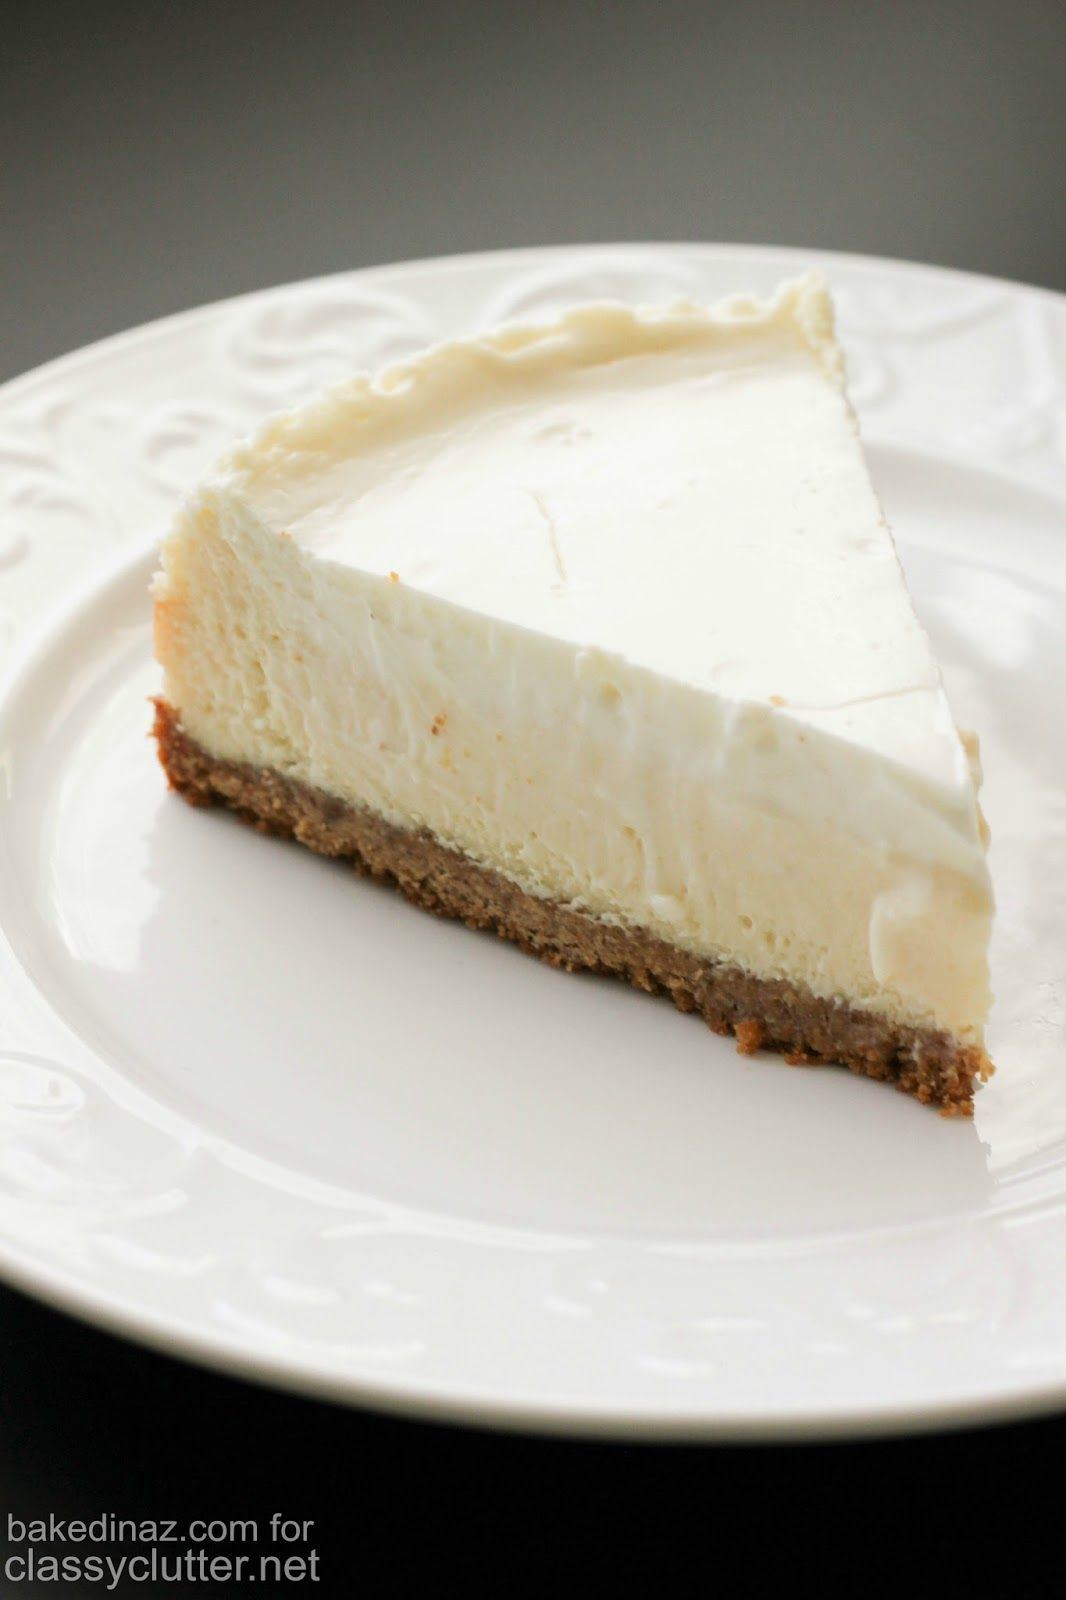 Classic Cheesecake With Sour Cream Topping Classy Clutter Sour Cream Recipes Easy Cheesecake Recipes Cheesecake Recipes Classic